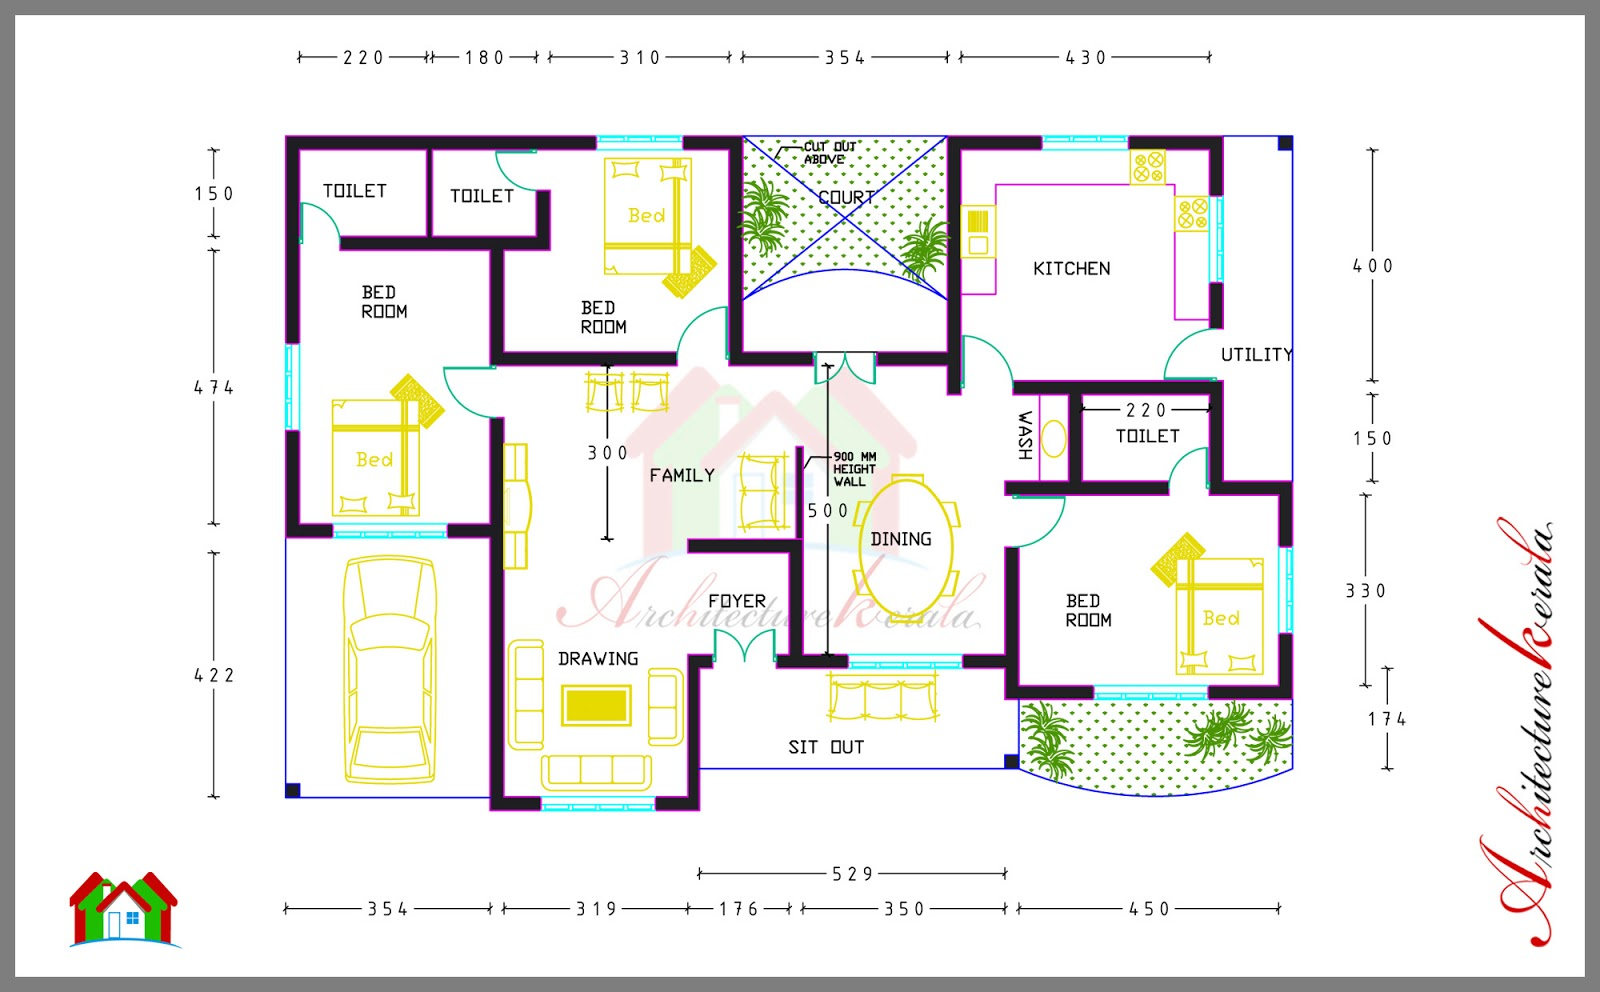 3 bed room house plan with room dimensions architecture for Three bedroom house plans kerala style